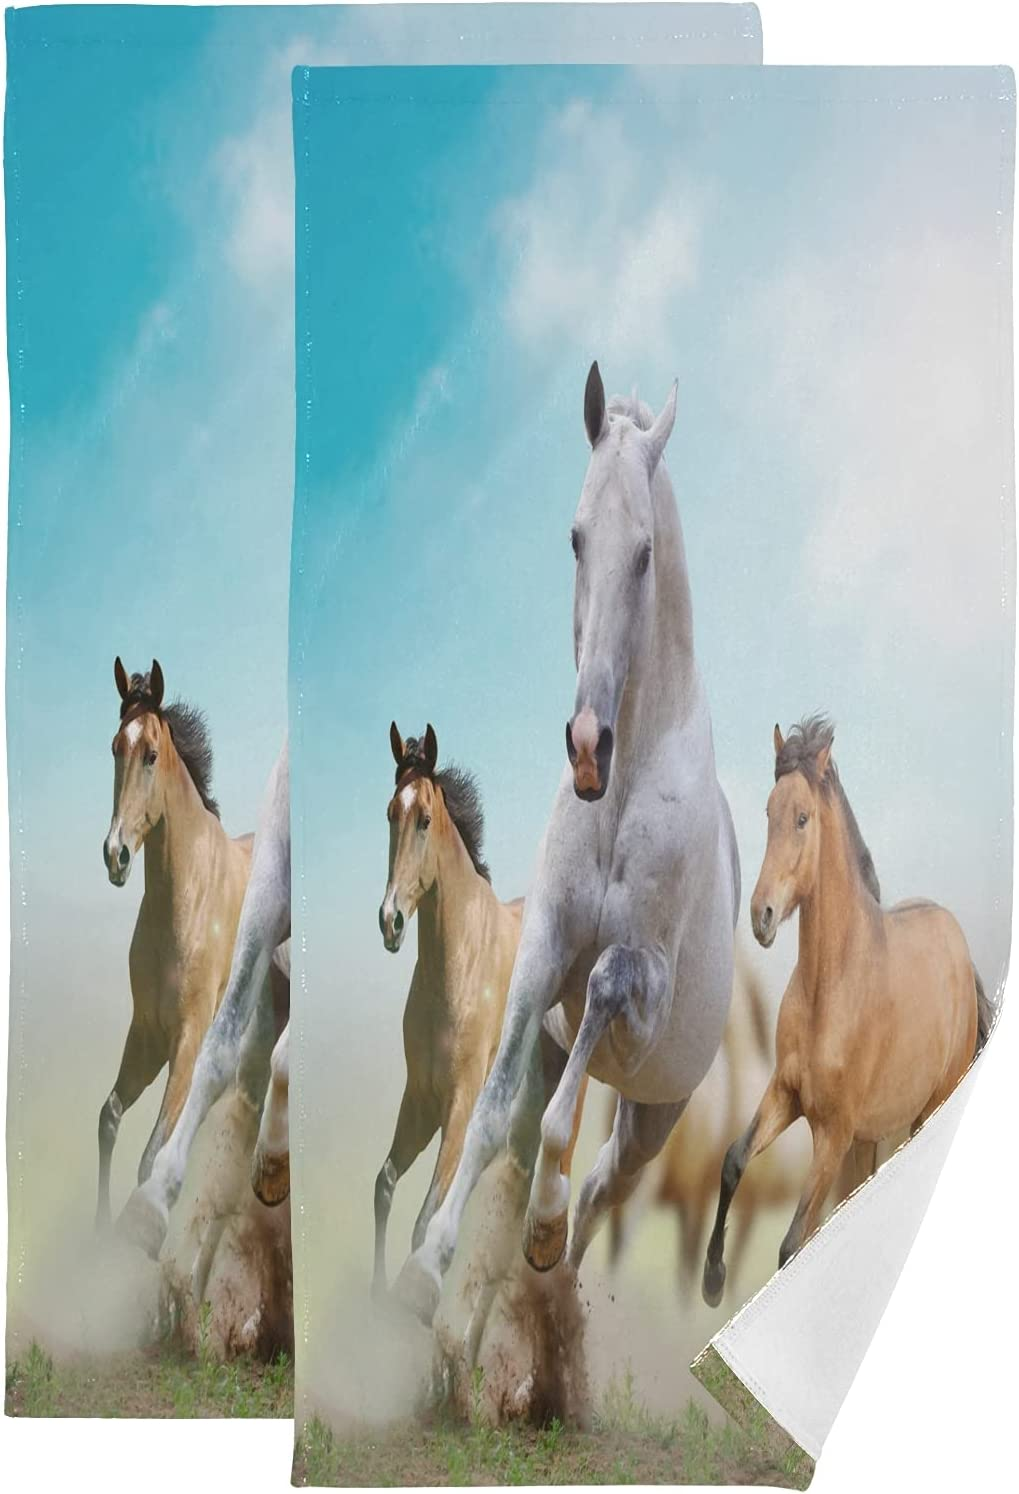 ALAZA Horses Hand Mail order Towels Soft Decorative Credence Absorbent Bath F